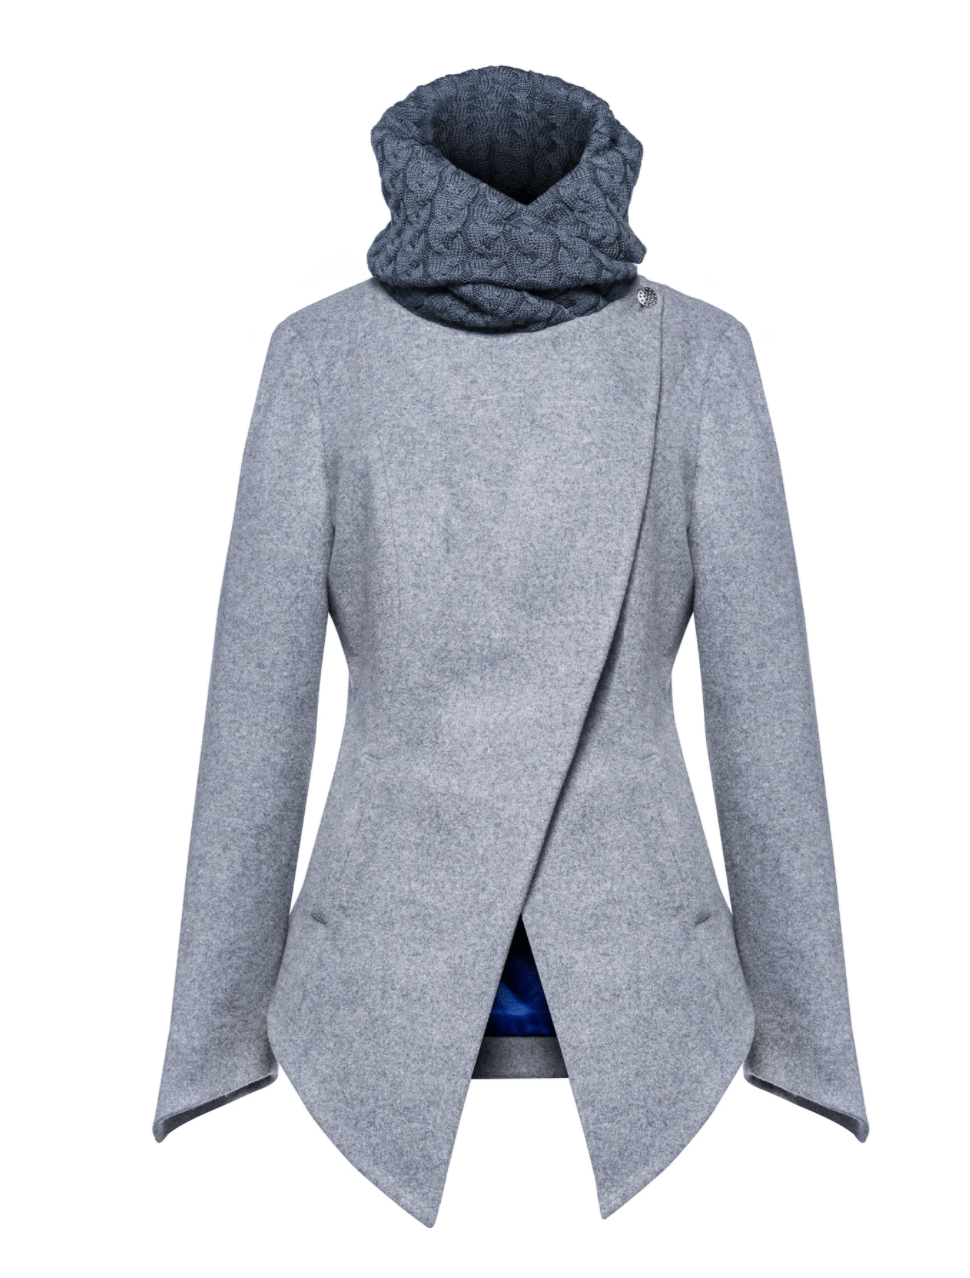 The versatality of blue will let you wear your coat any way you want.